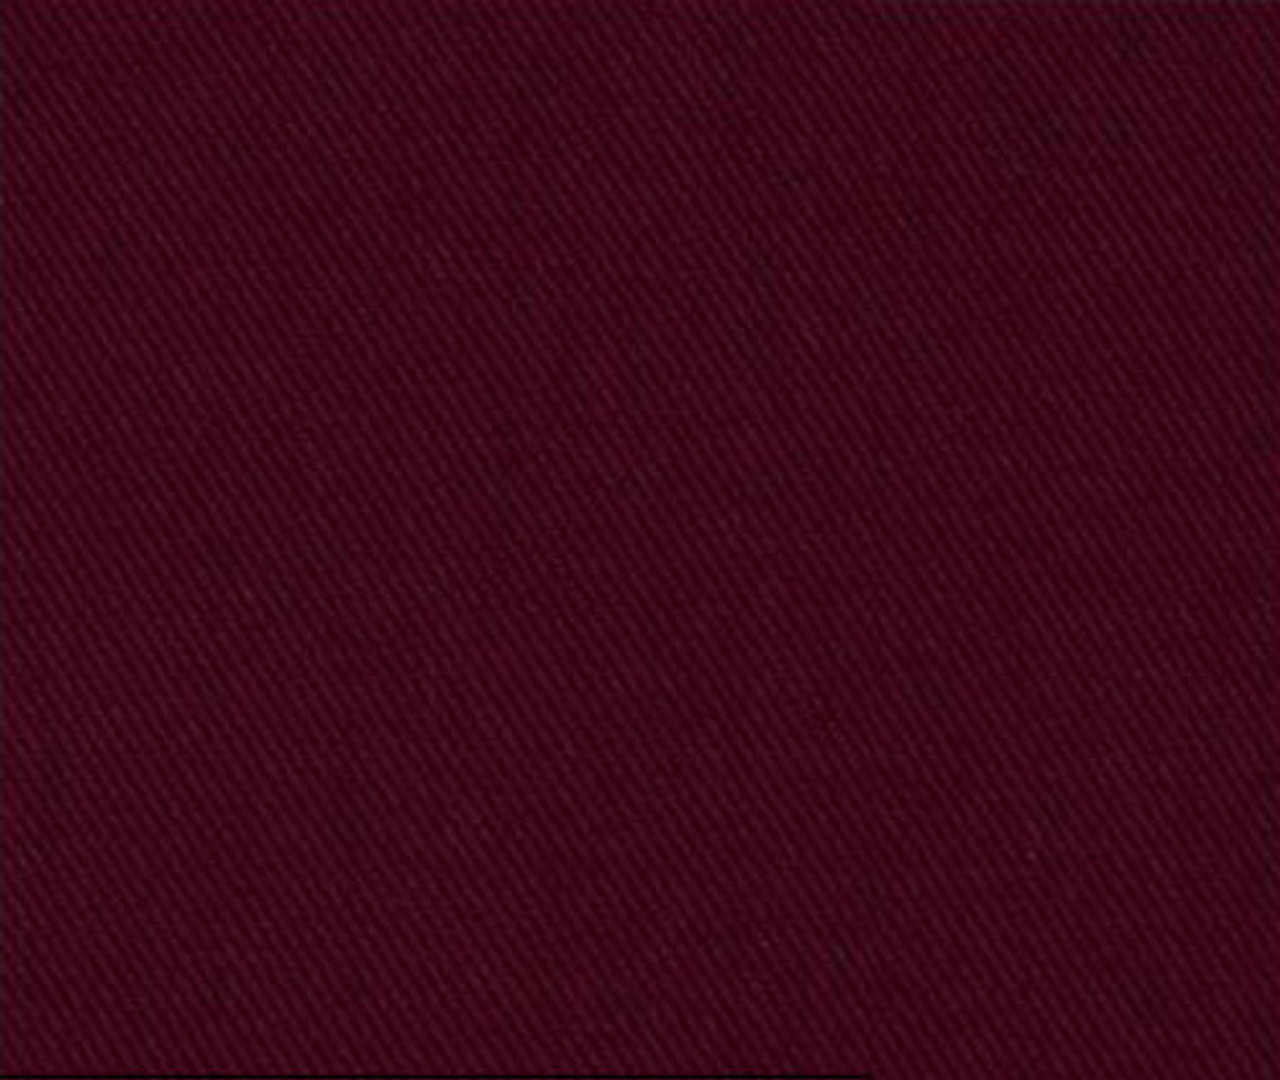 Face Mask -Burgundy Solid - Texas A&M Aggies